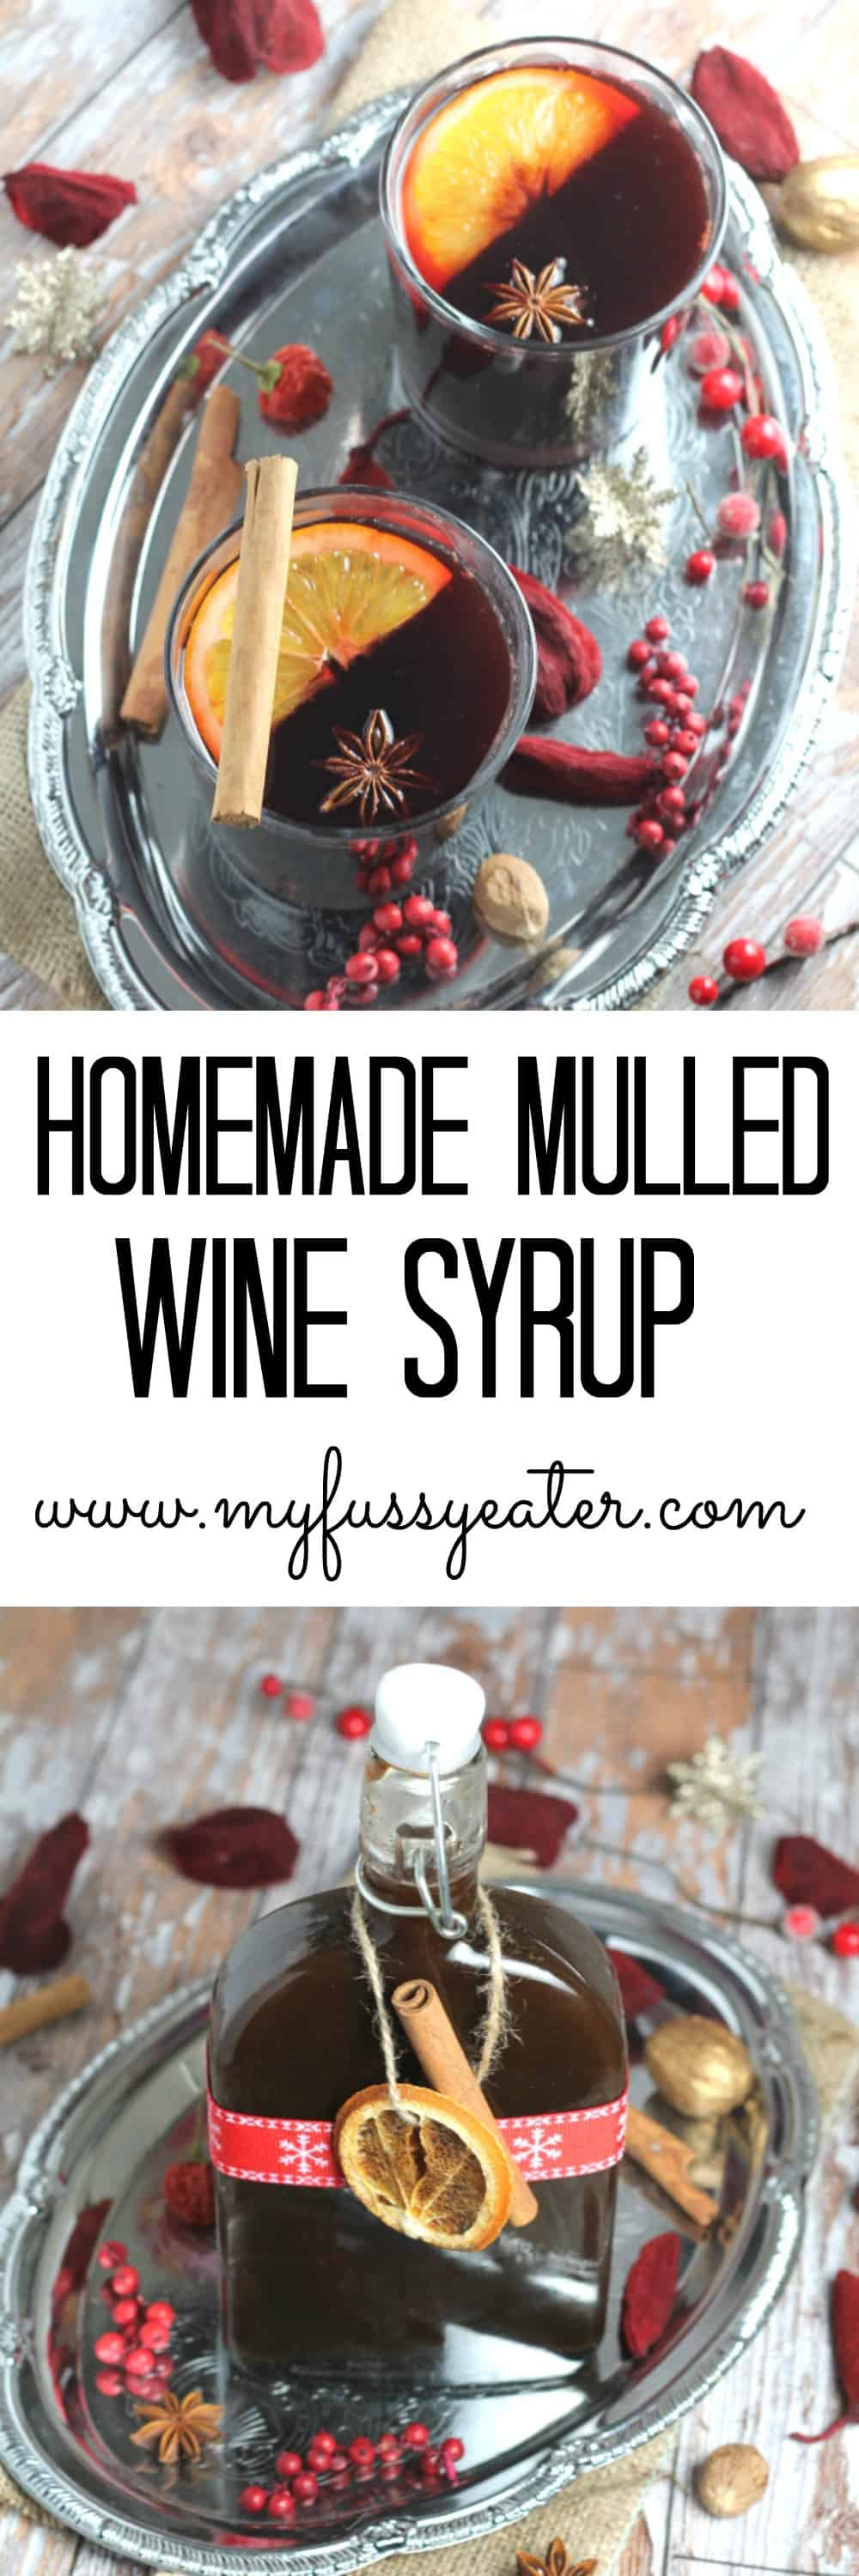 Homemade Clean Eating Mulled Syrup